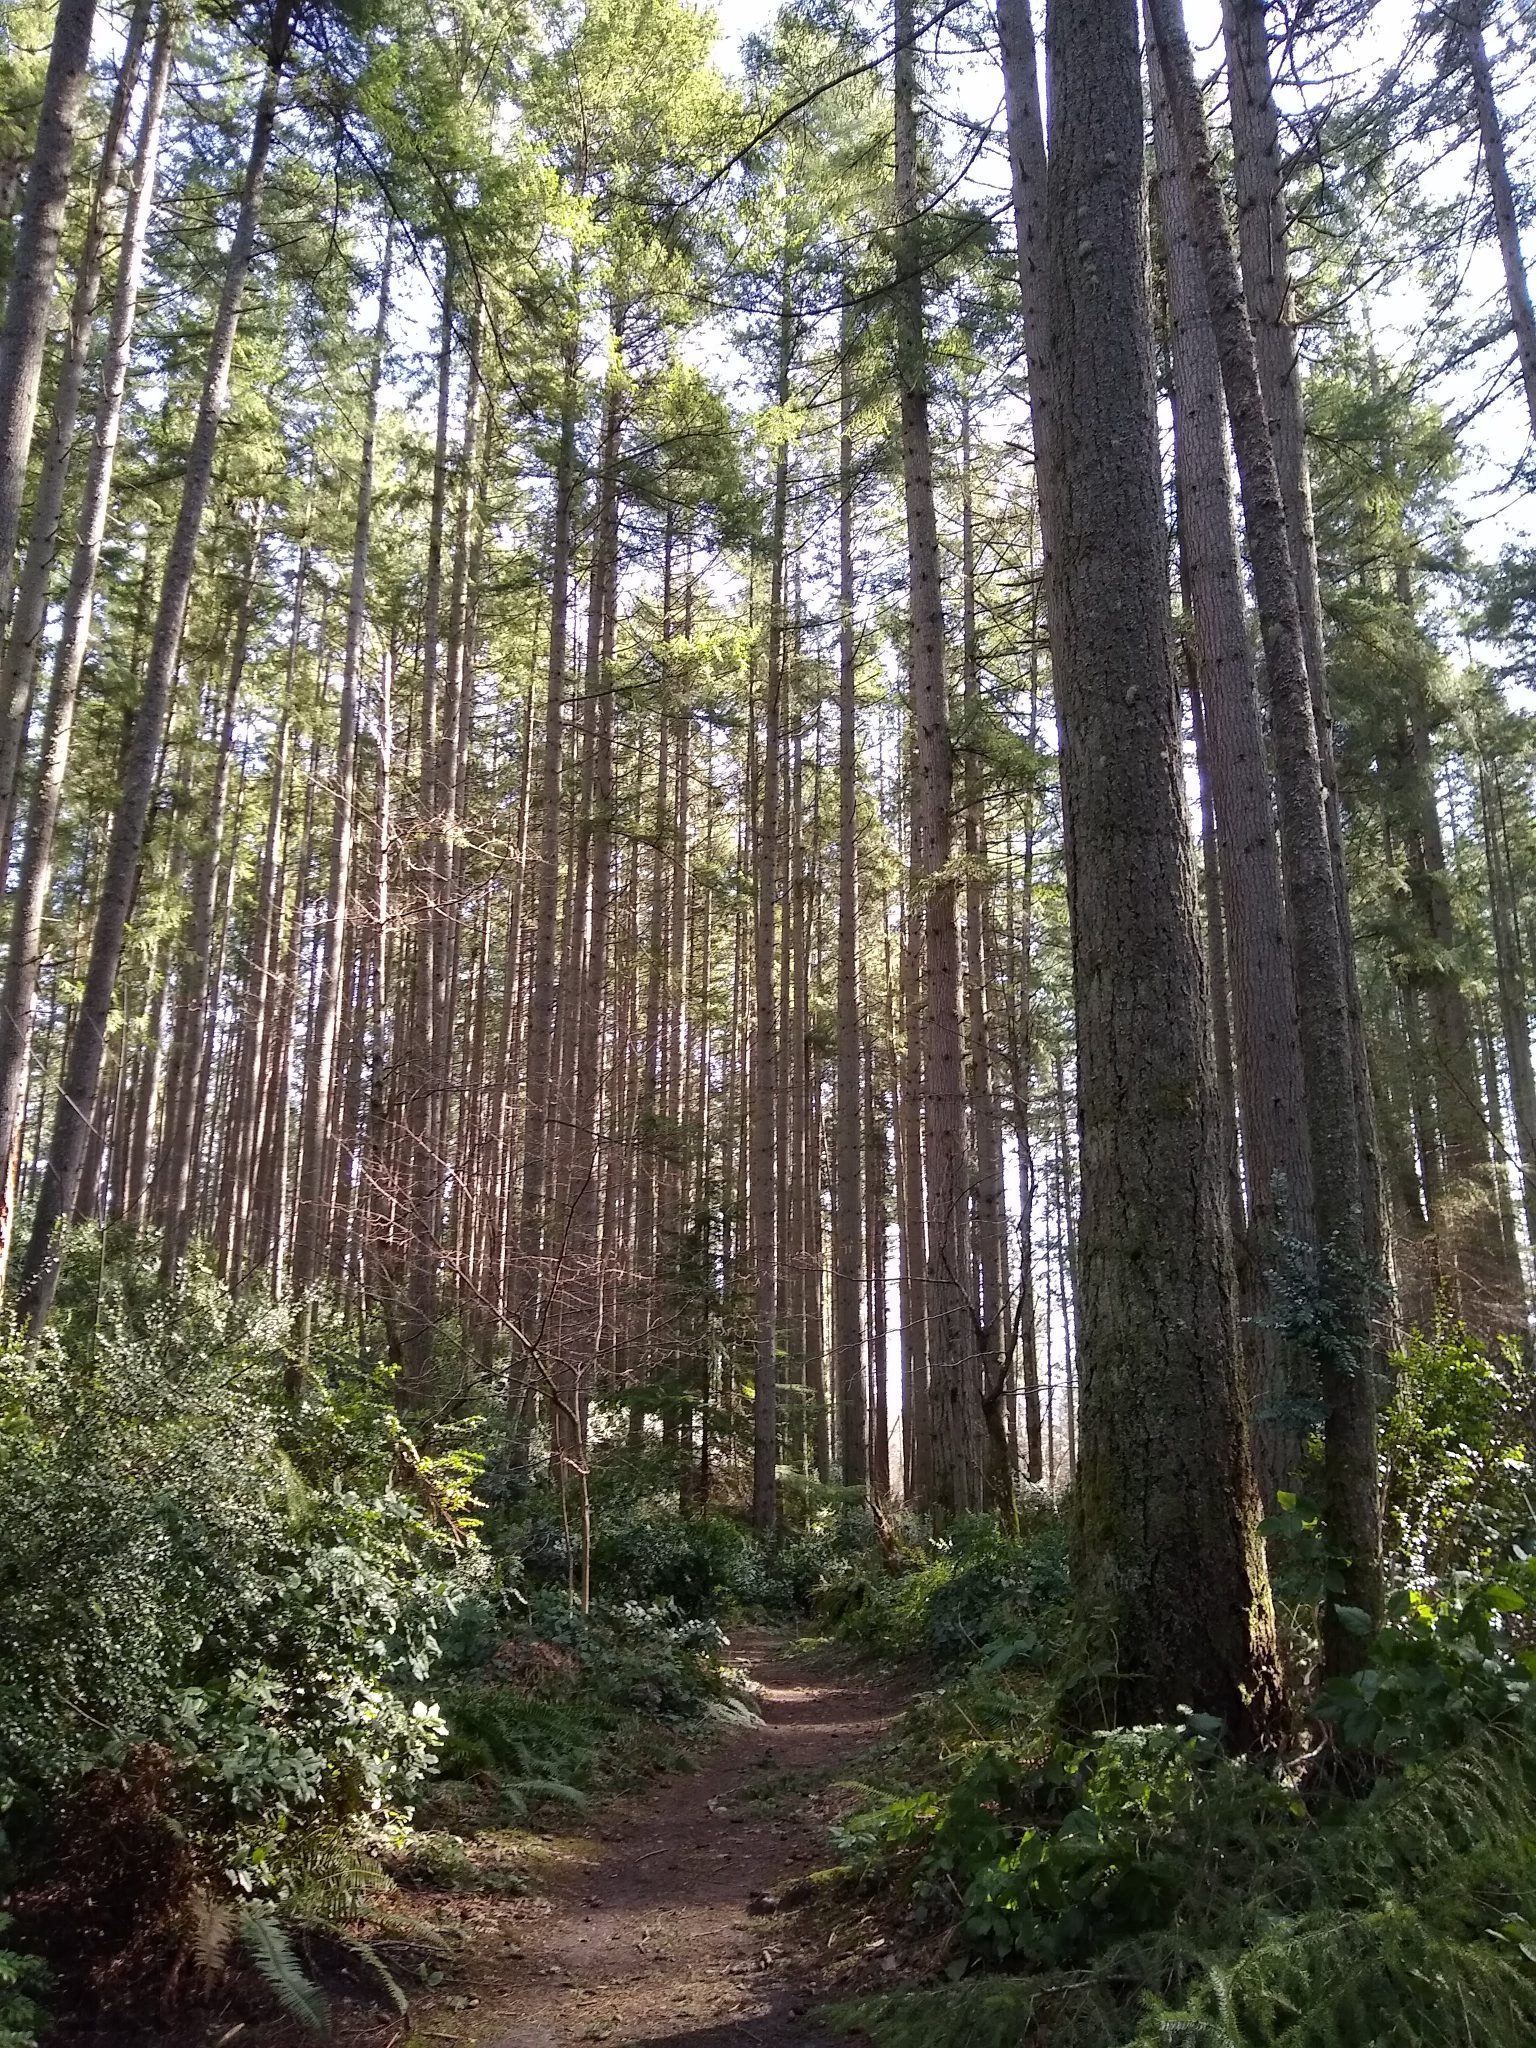 Tall straight trees without leaves with ferns below and a winding trail